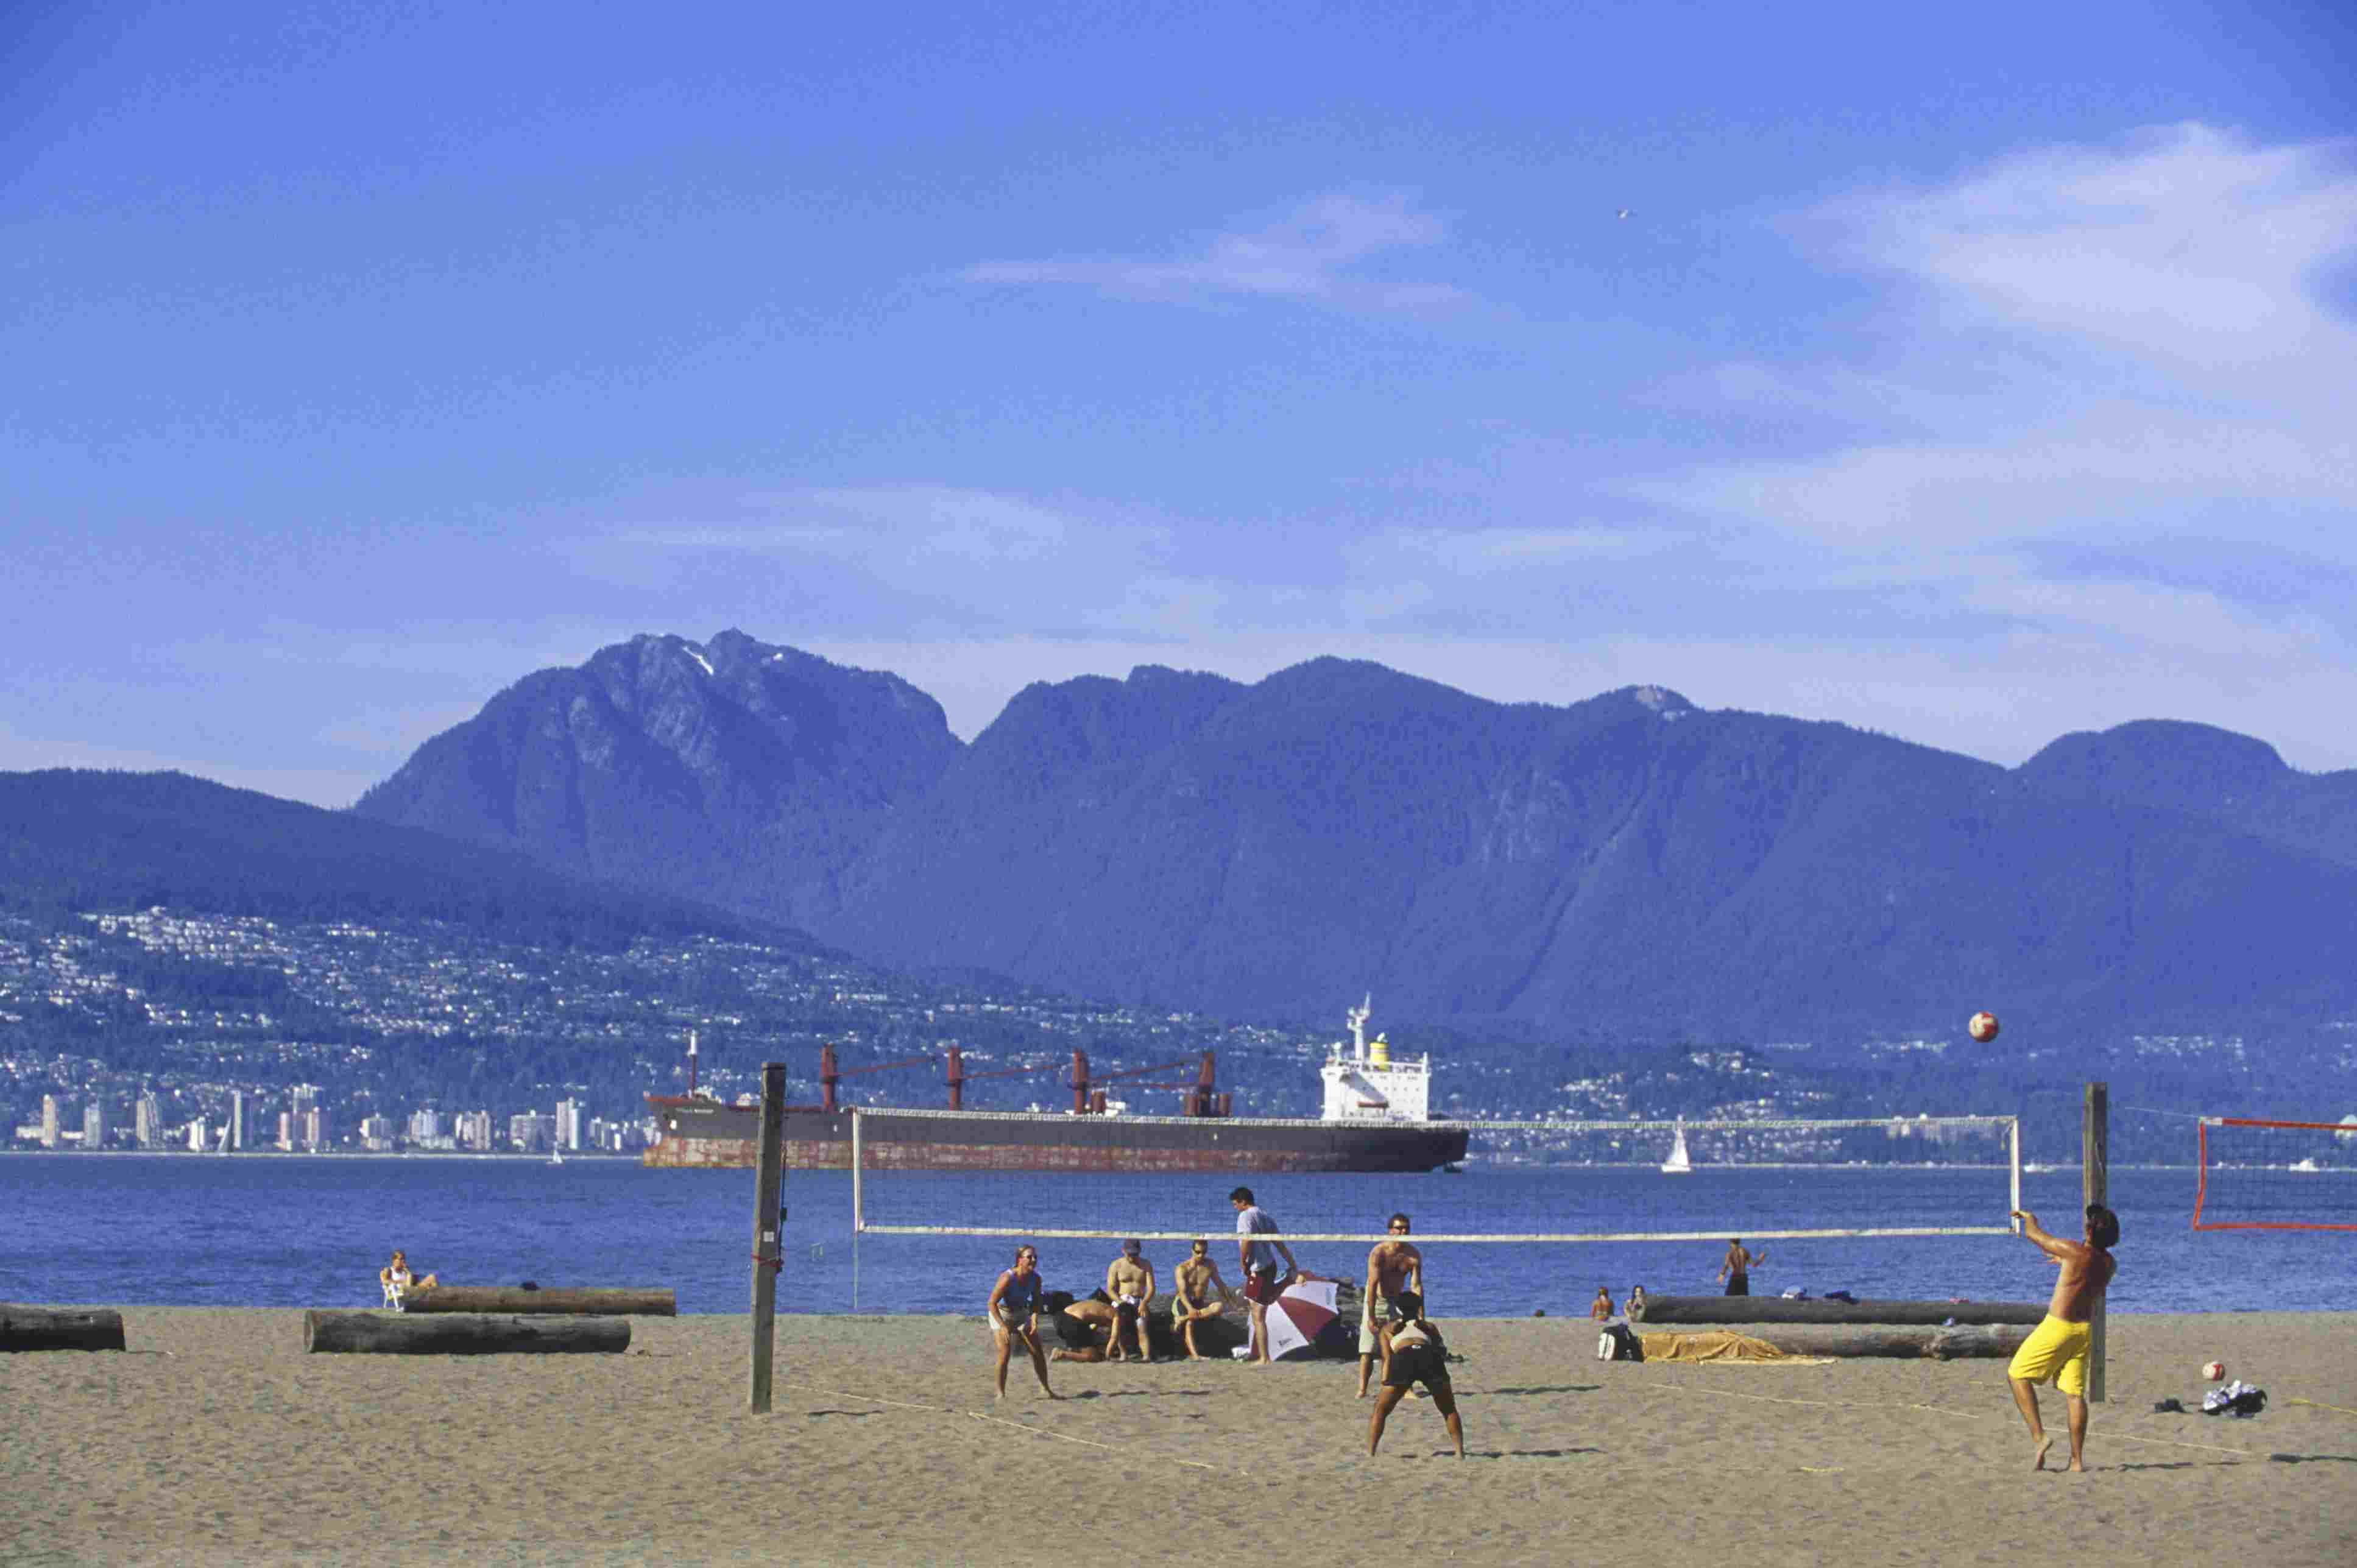 People playing volleyball on Kitsilano Beach, Commercial ship in English Bay and North Shore beyond, Vancouver, British Columbia, Canada.